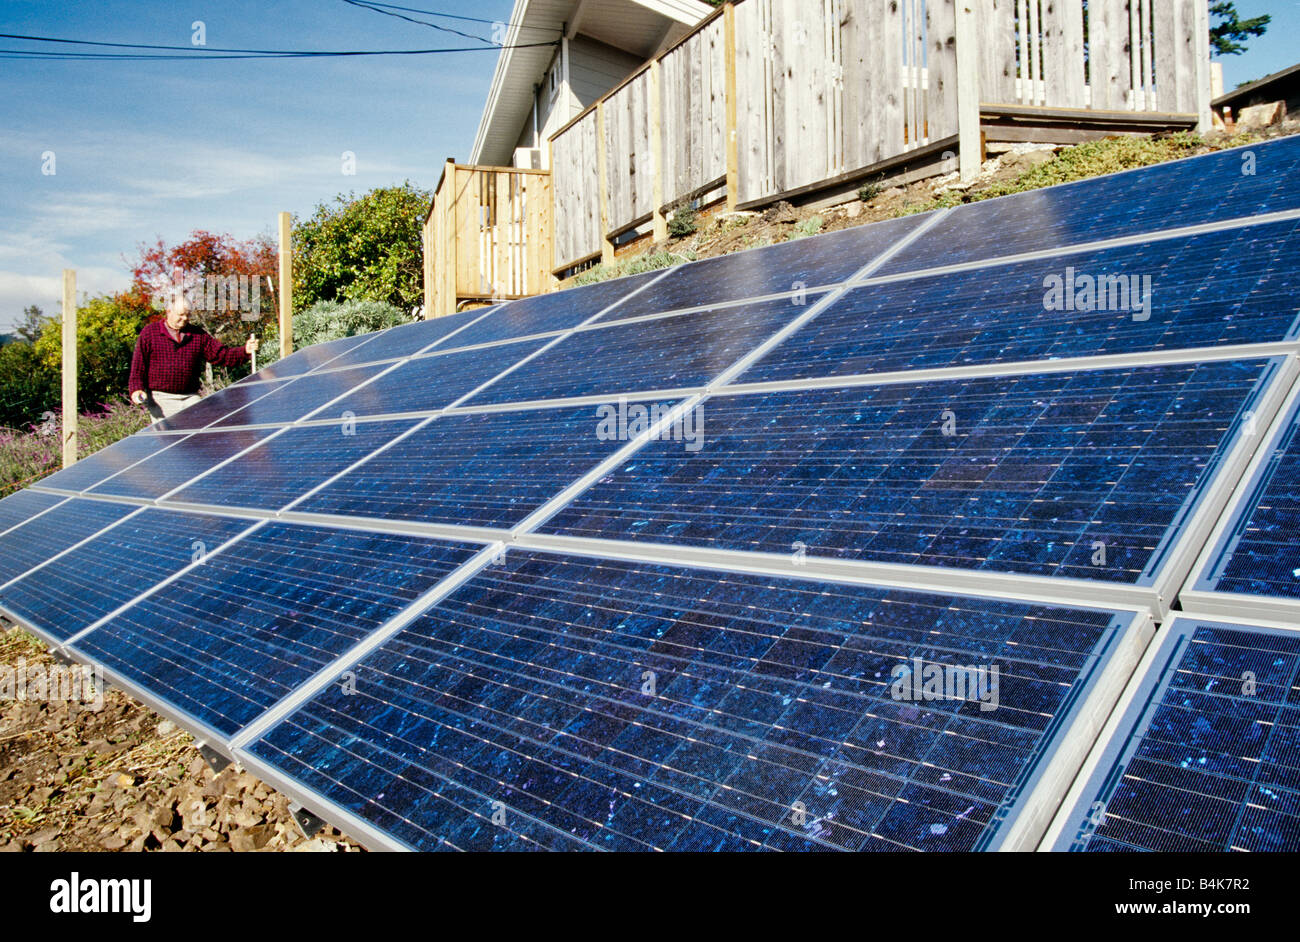 Homeowner inspecting newly installed solar panels. - Stock Image